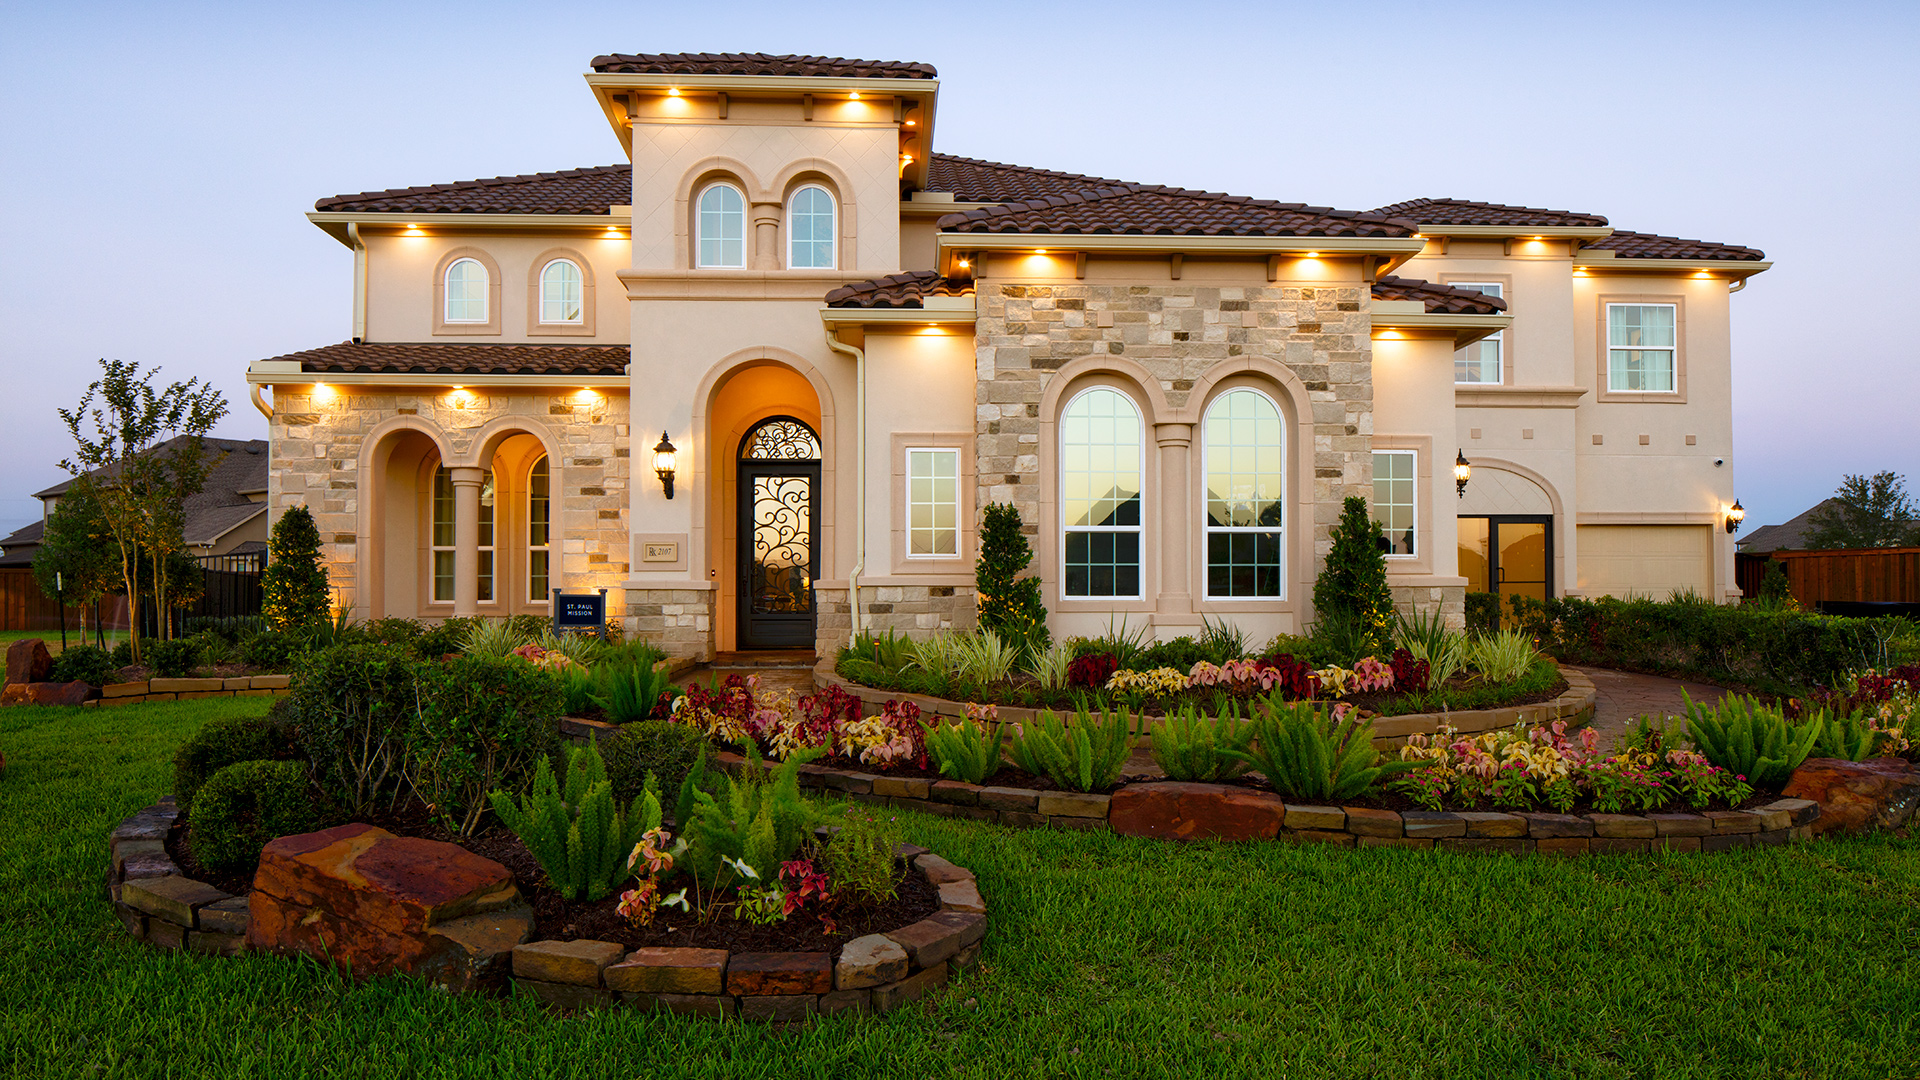 Peyton Mission Model Home Now Open - Reserve at Katy - Katy, TX